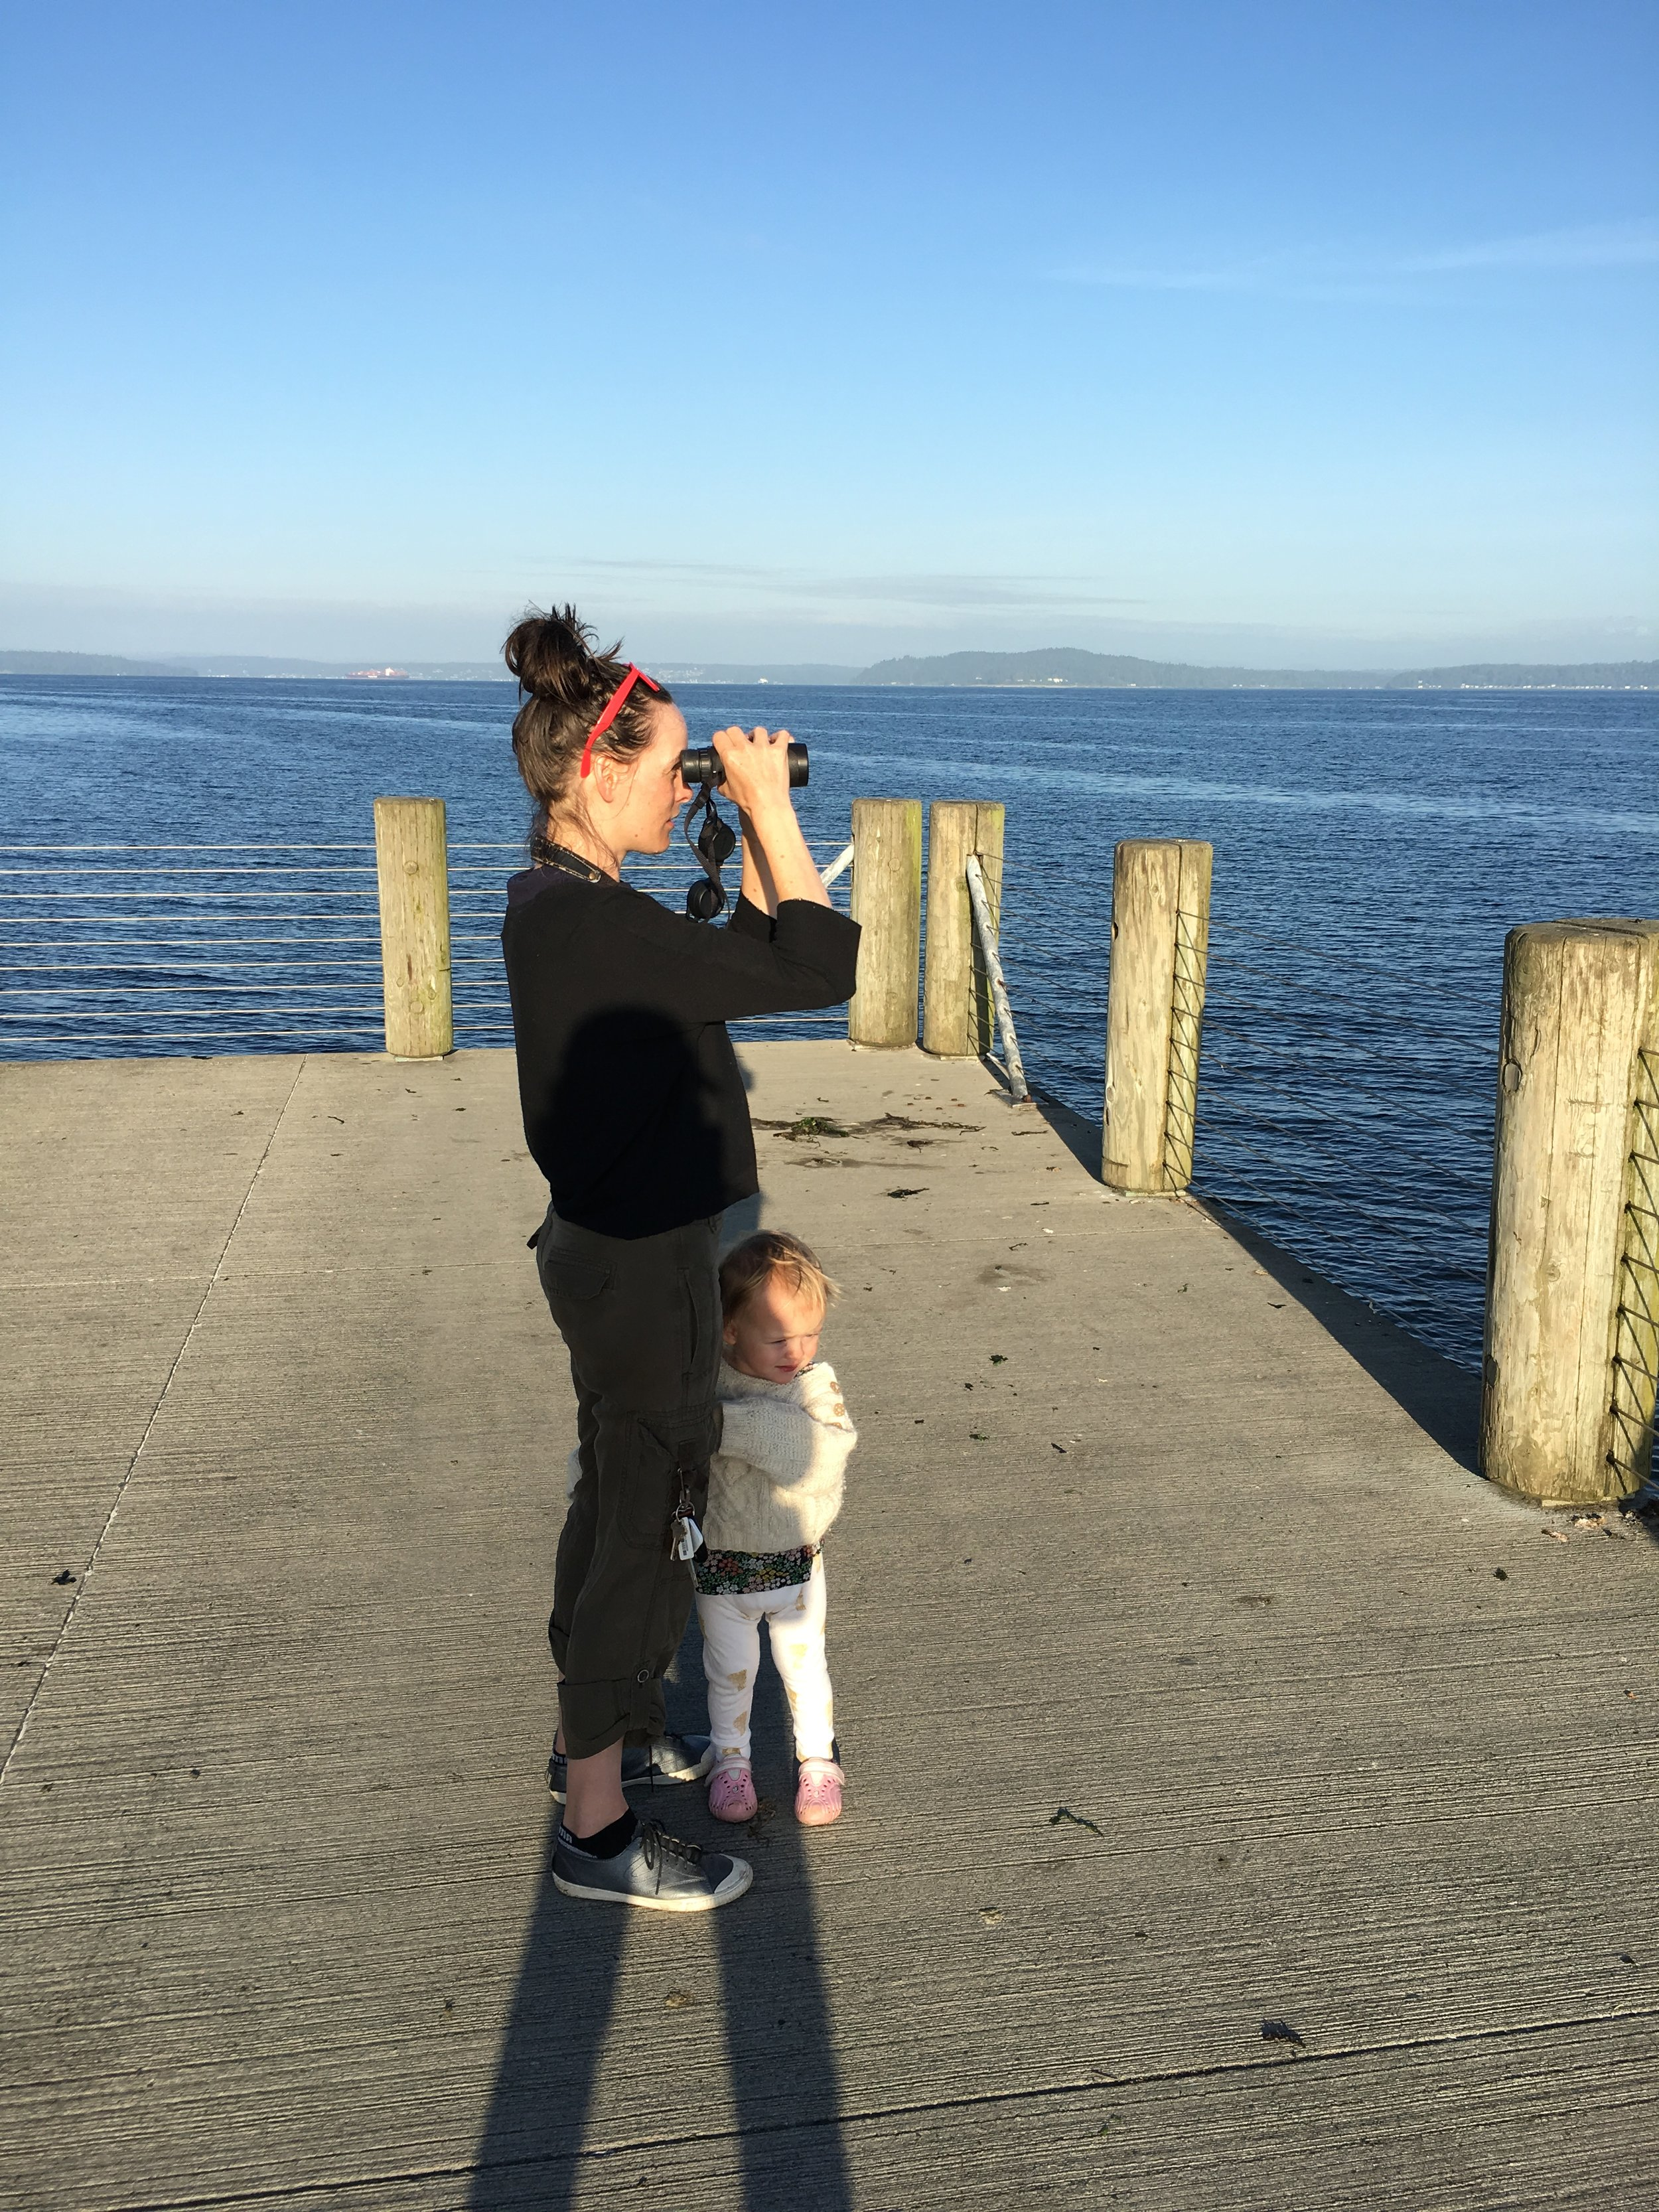 Birding on Alki Point in West Seattle, WA, June 2019. My daughter has been a game companion until recently. Possibly a repeat of my own experience? See below!